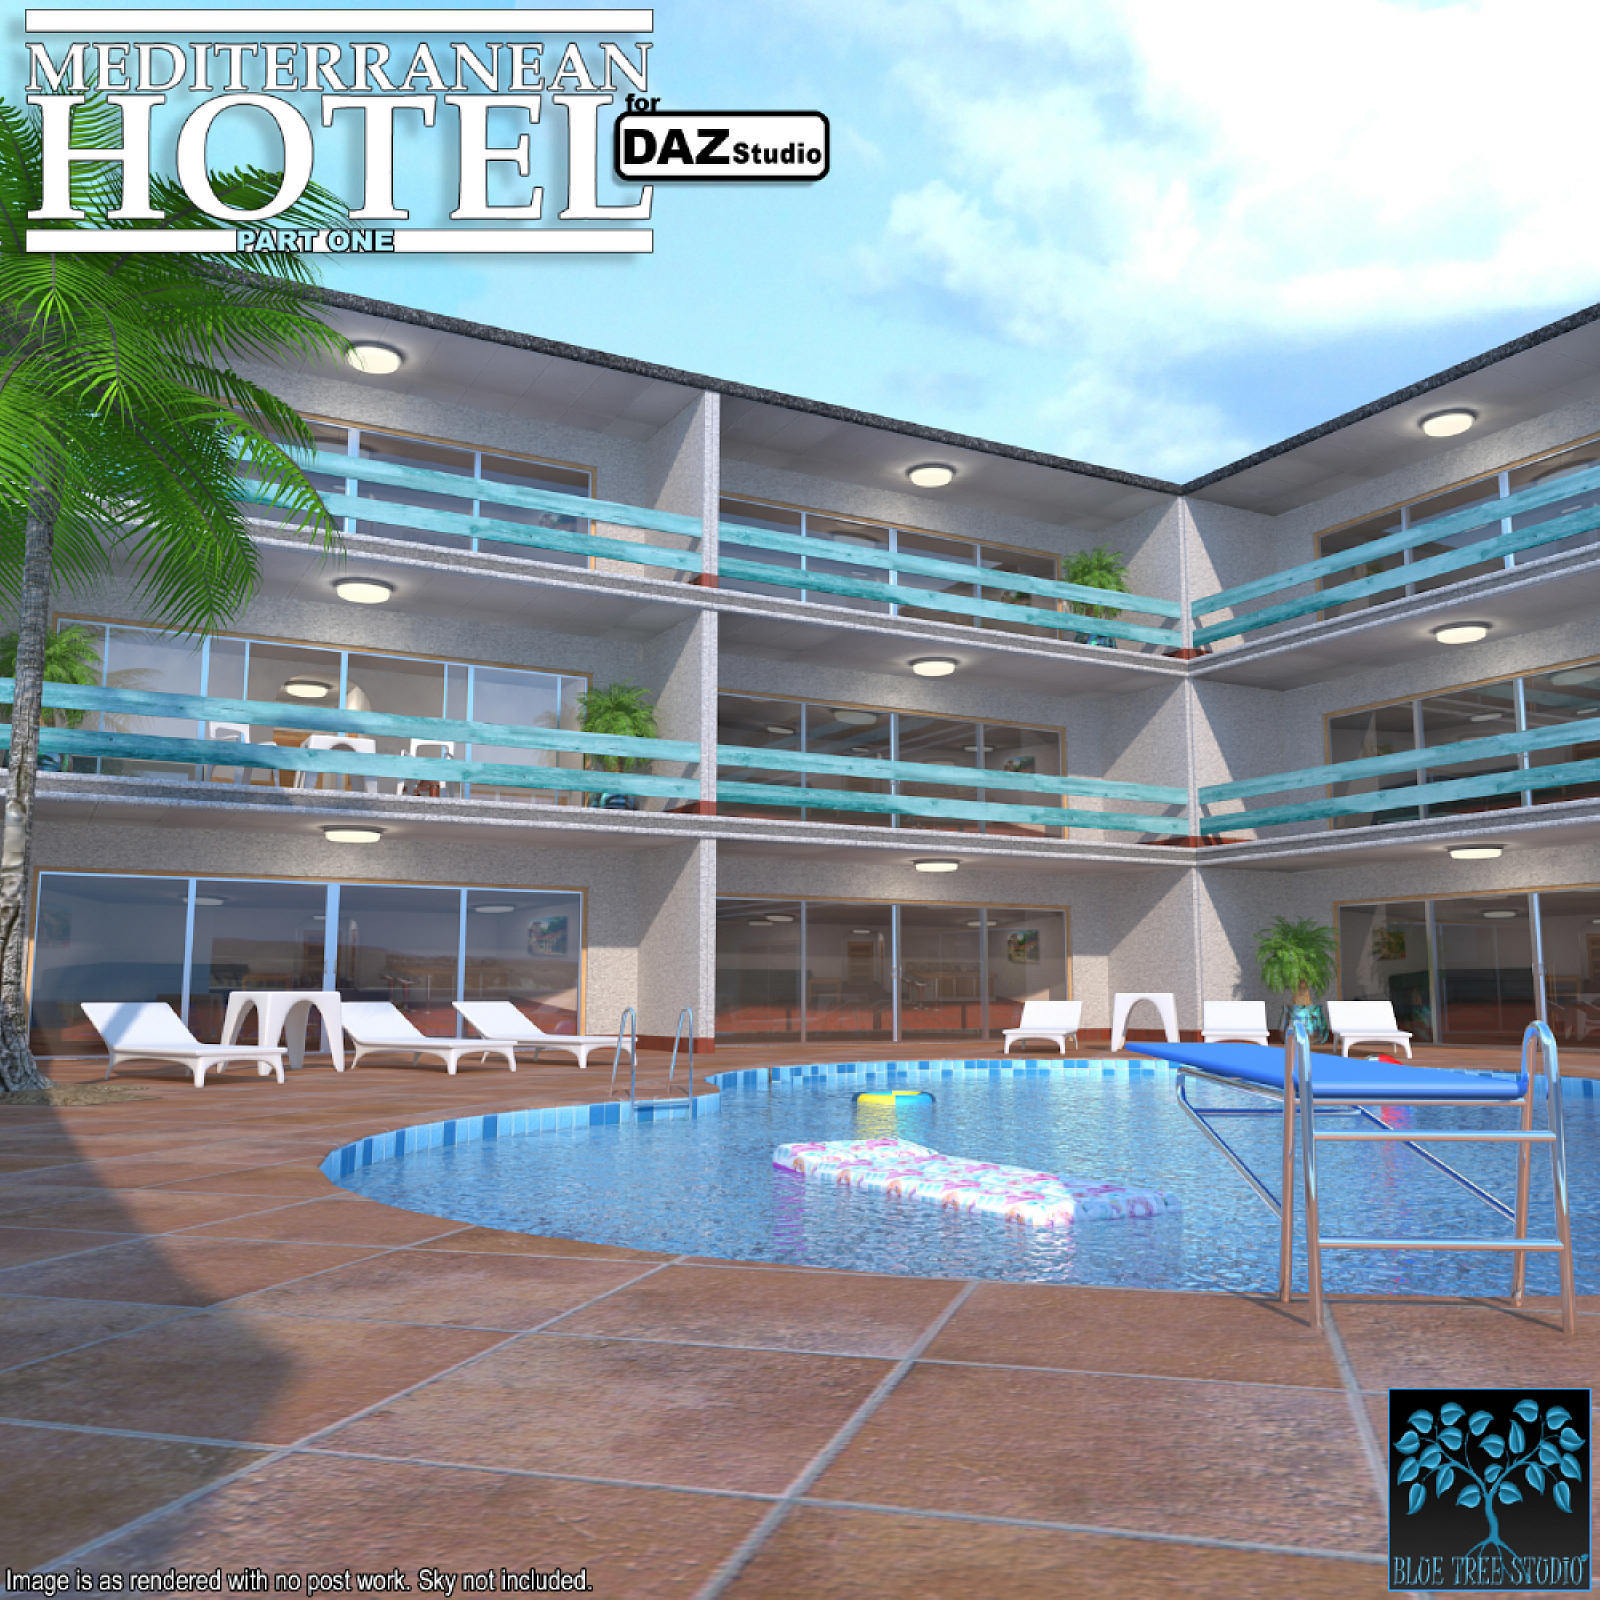 Mediterranean Hotel Part One for Daz Studio